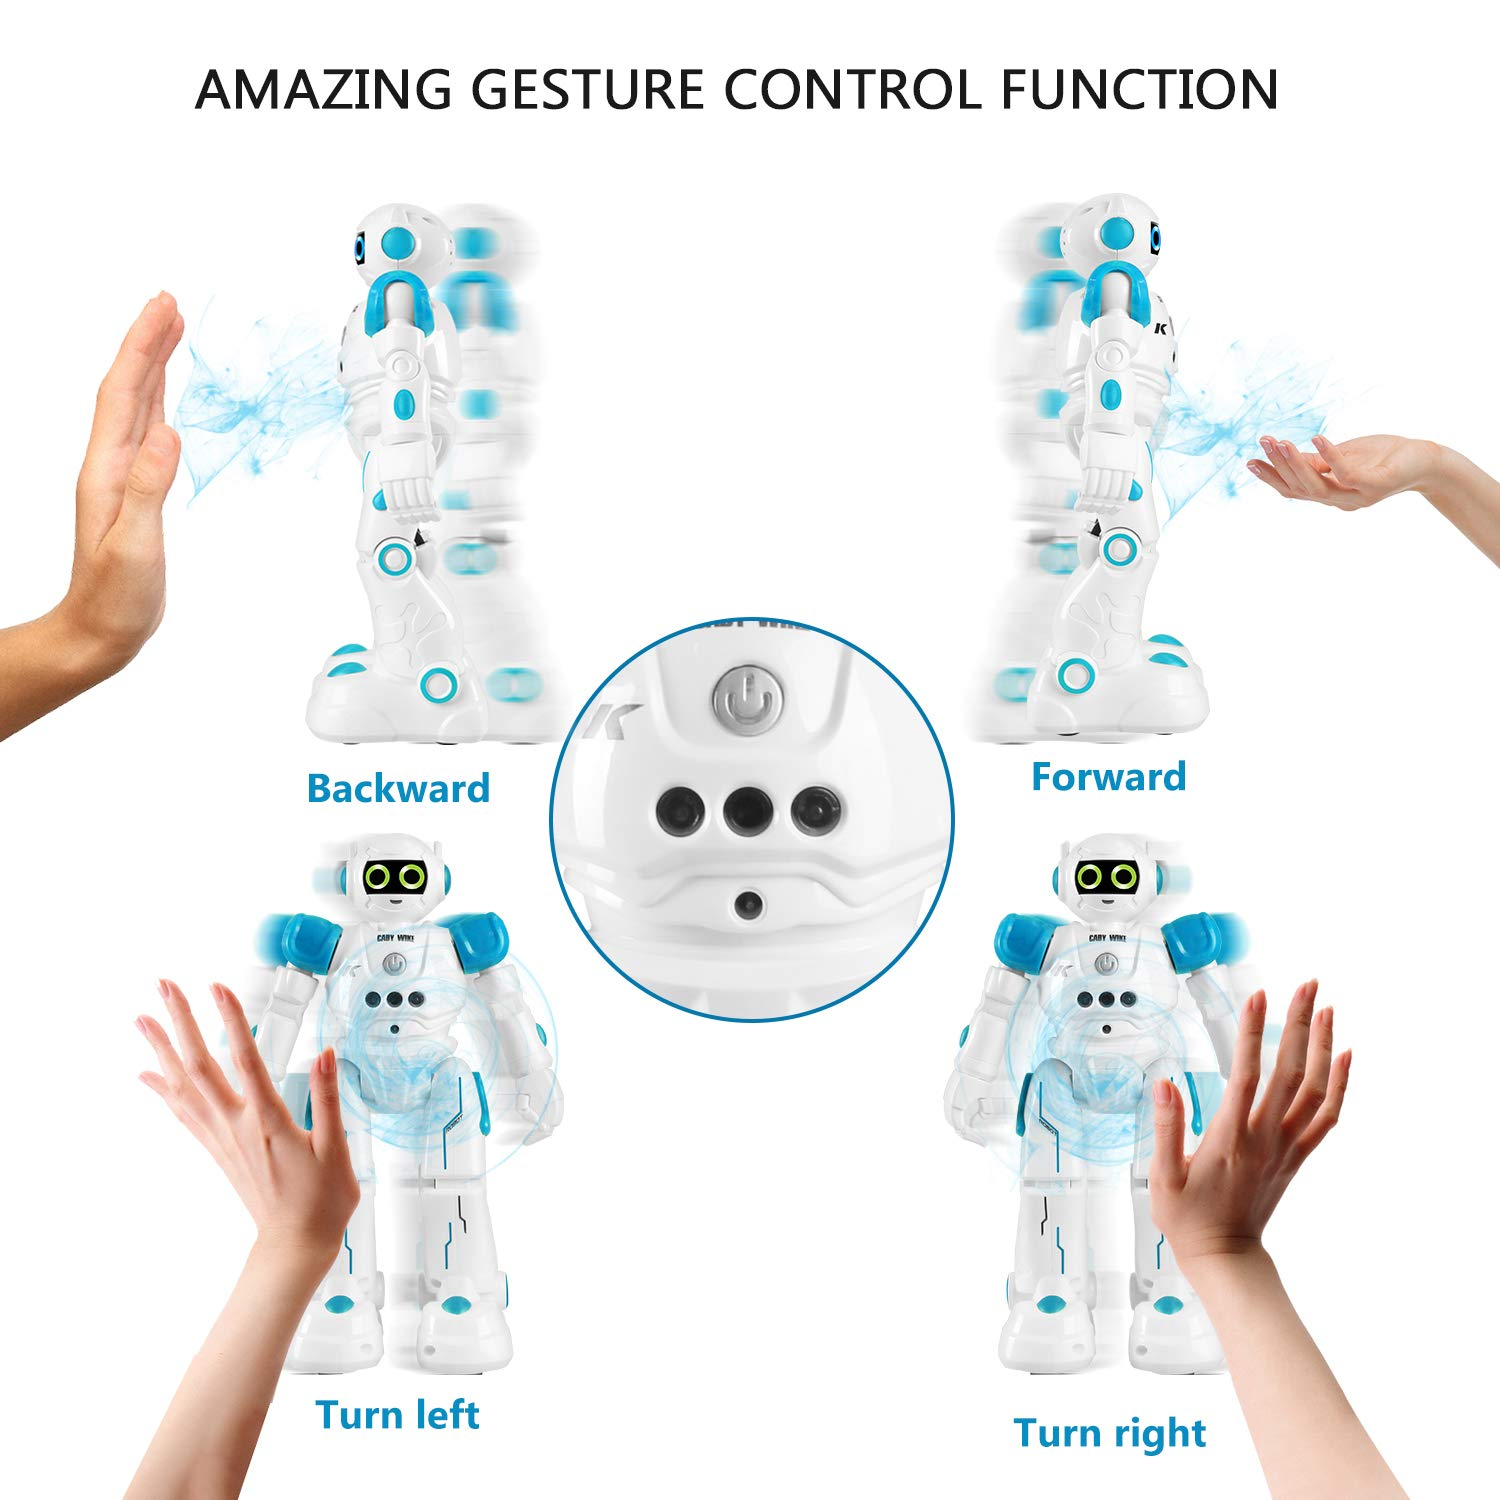 IHBUDS Robot Toy for Kids, Smart Robot Kit with Remote Control & Gesture Control, Perfect Robotics Gifts for Boys Girls Learning Programmable Walking Dancing Singing (Blue) by IHBUDS (Image #5)